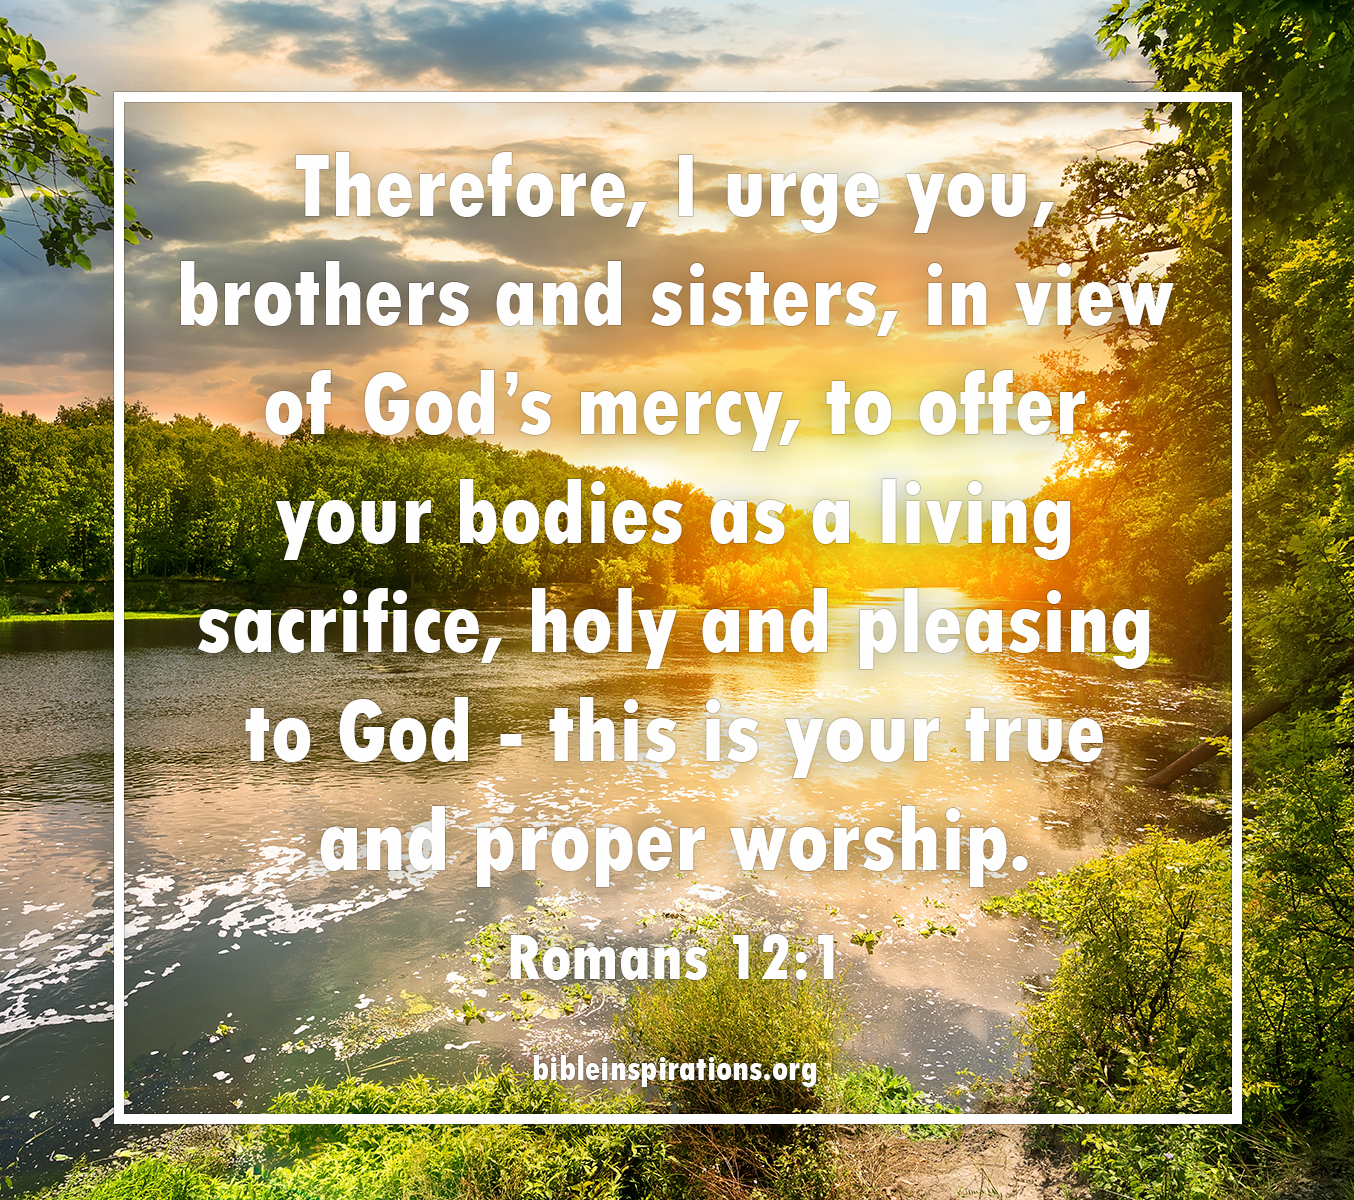 Therefore, I urge you, brothers and sisters, in view of God's mercy, to offer your bodies as a living sacrifice, holy and pleasing to God - this is your true and proper worship. - Romans 12:1